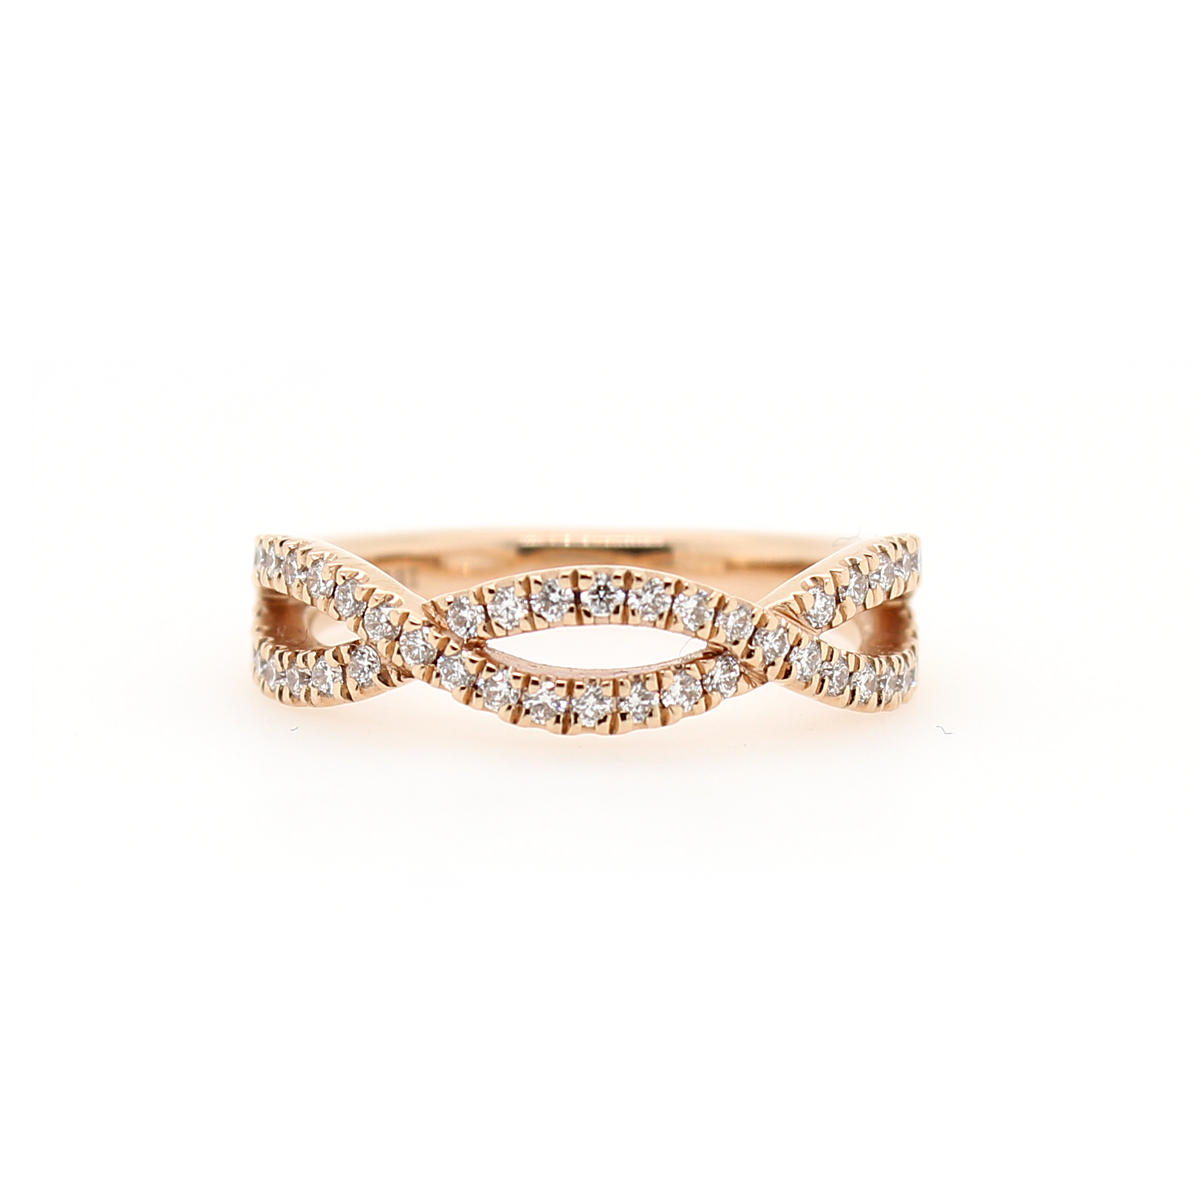 Henri Daussi 14 Karat Rose Gold Infinity Twist Diamond Wedding Band